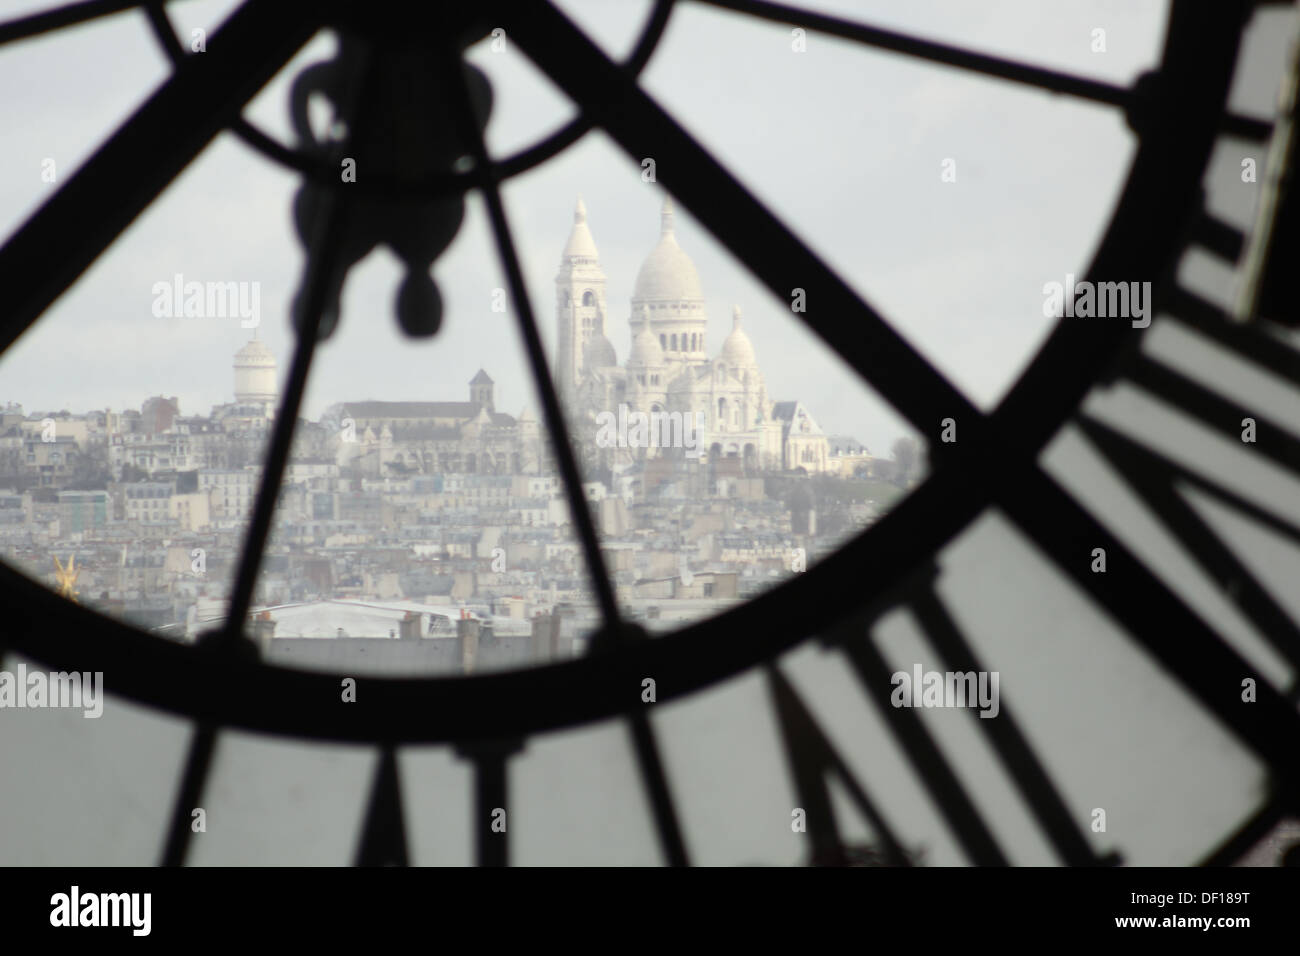 Montmartre through the clock window of Musee d'Orsay - Stock Image